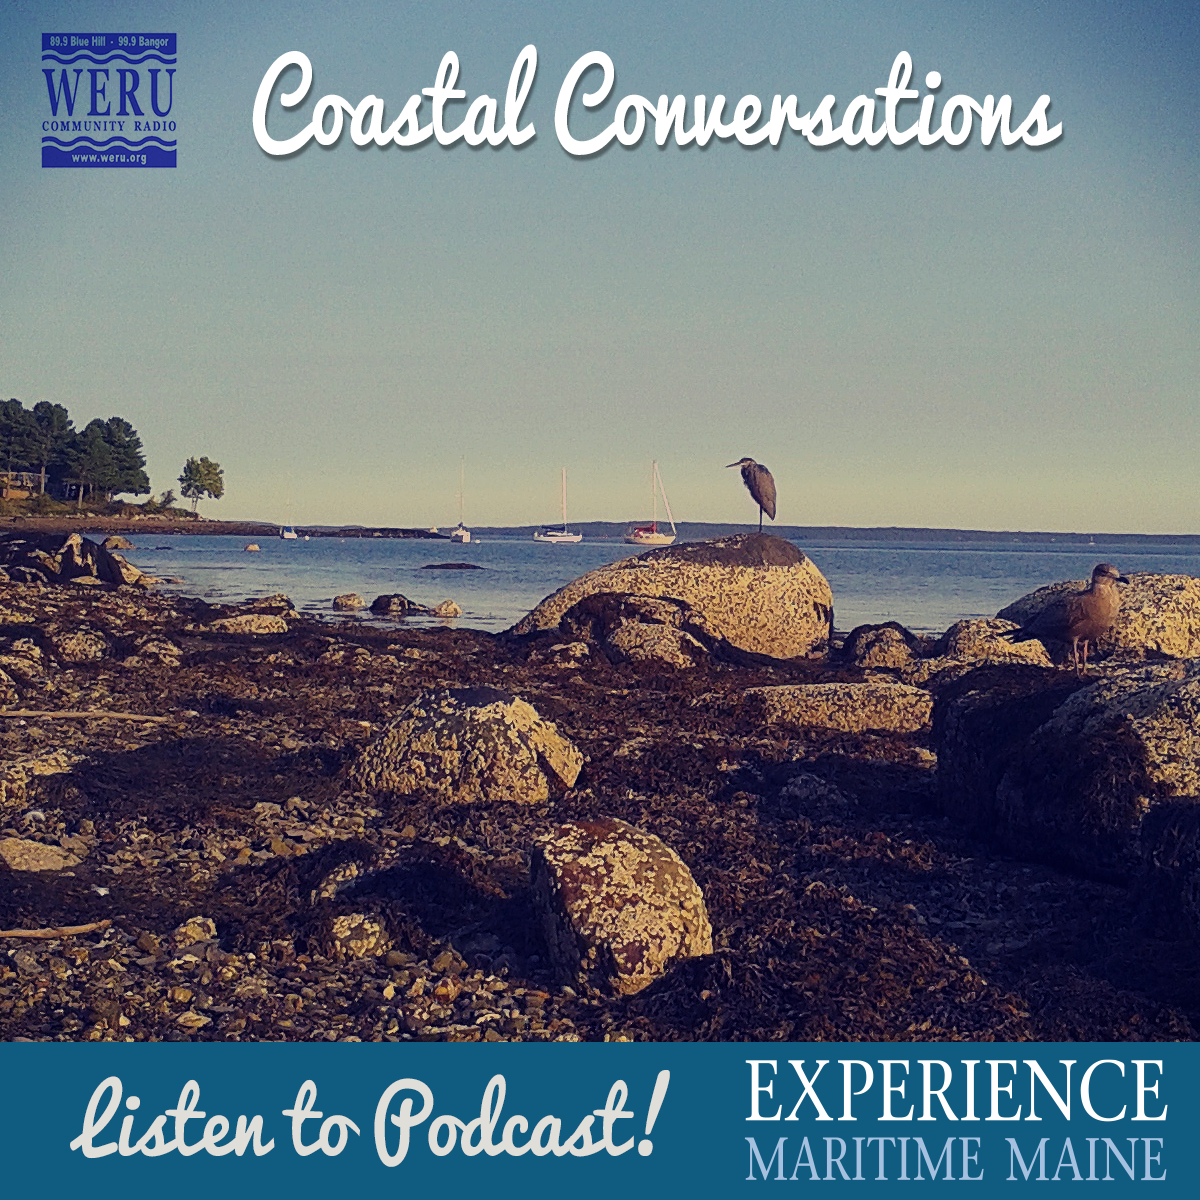 Coastal-Conversations-Seagull-Seabirds-Gulf-Maine